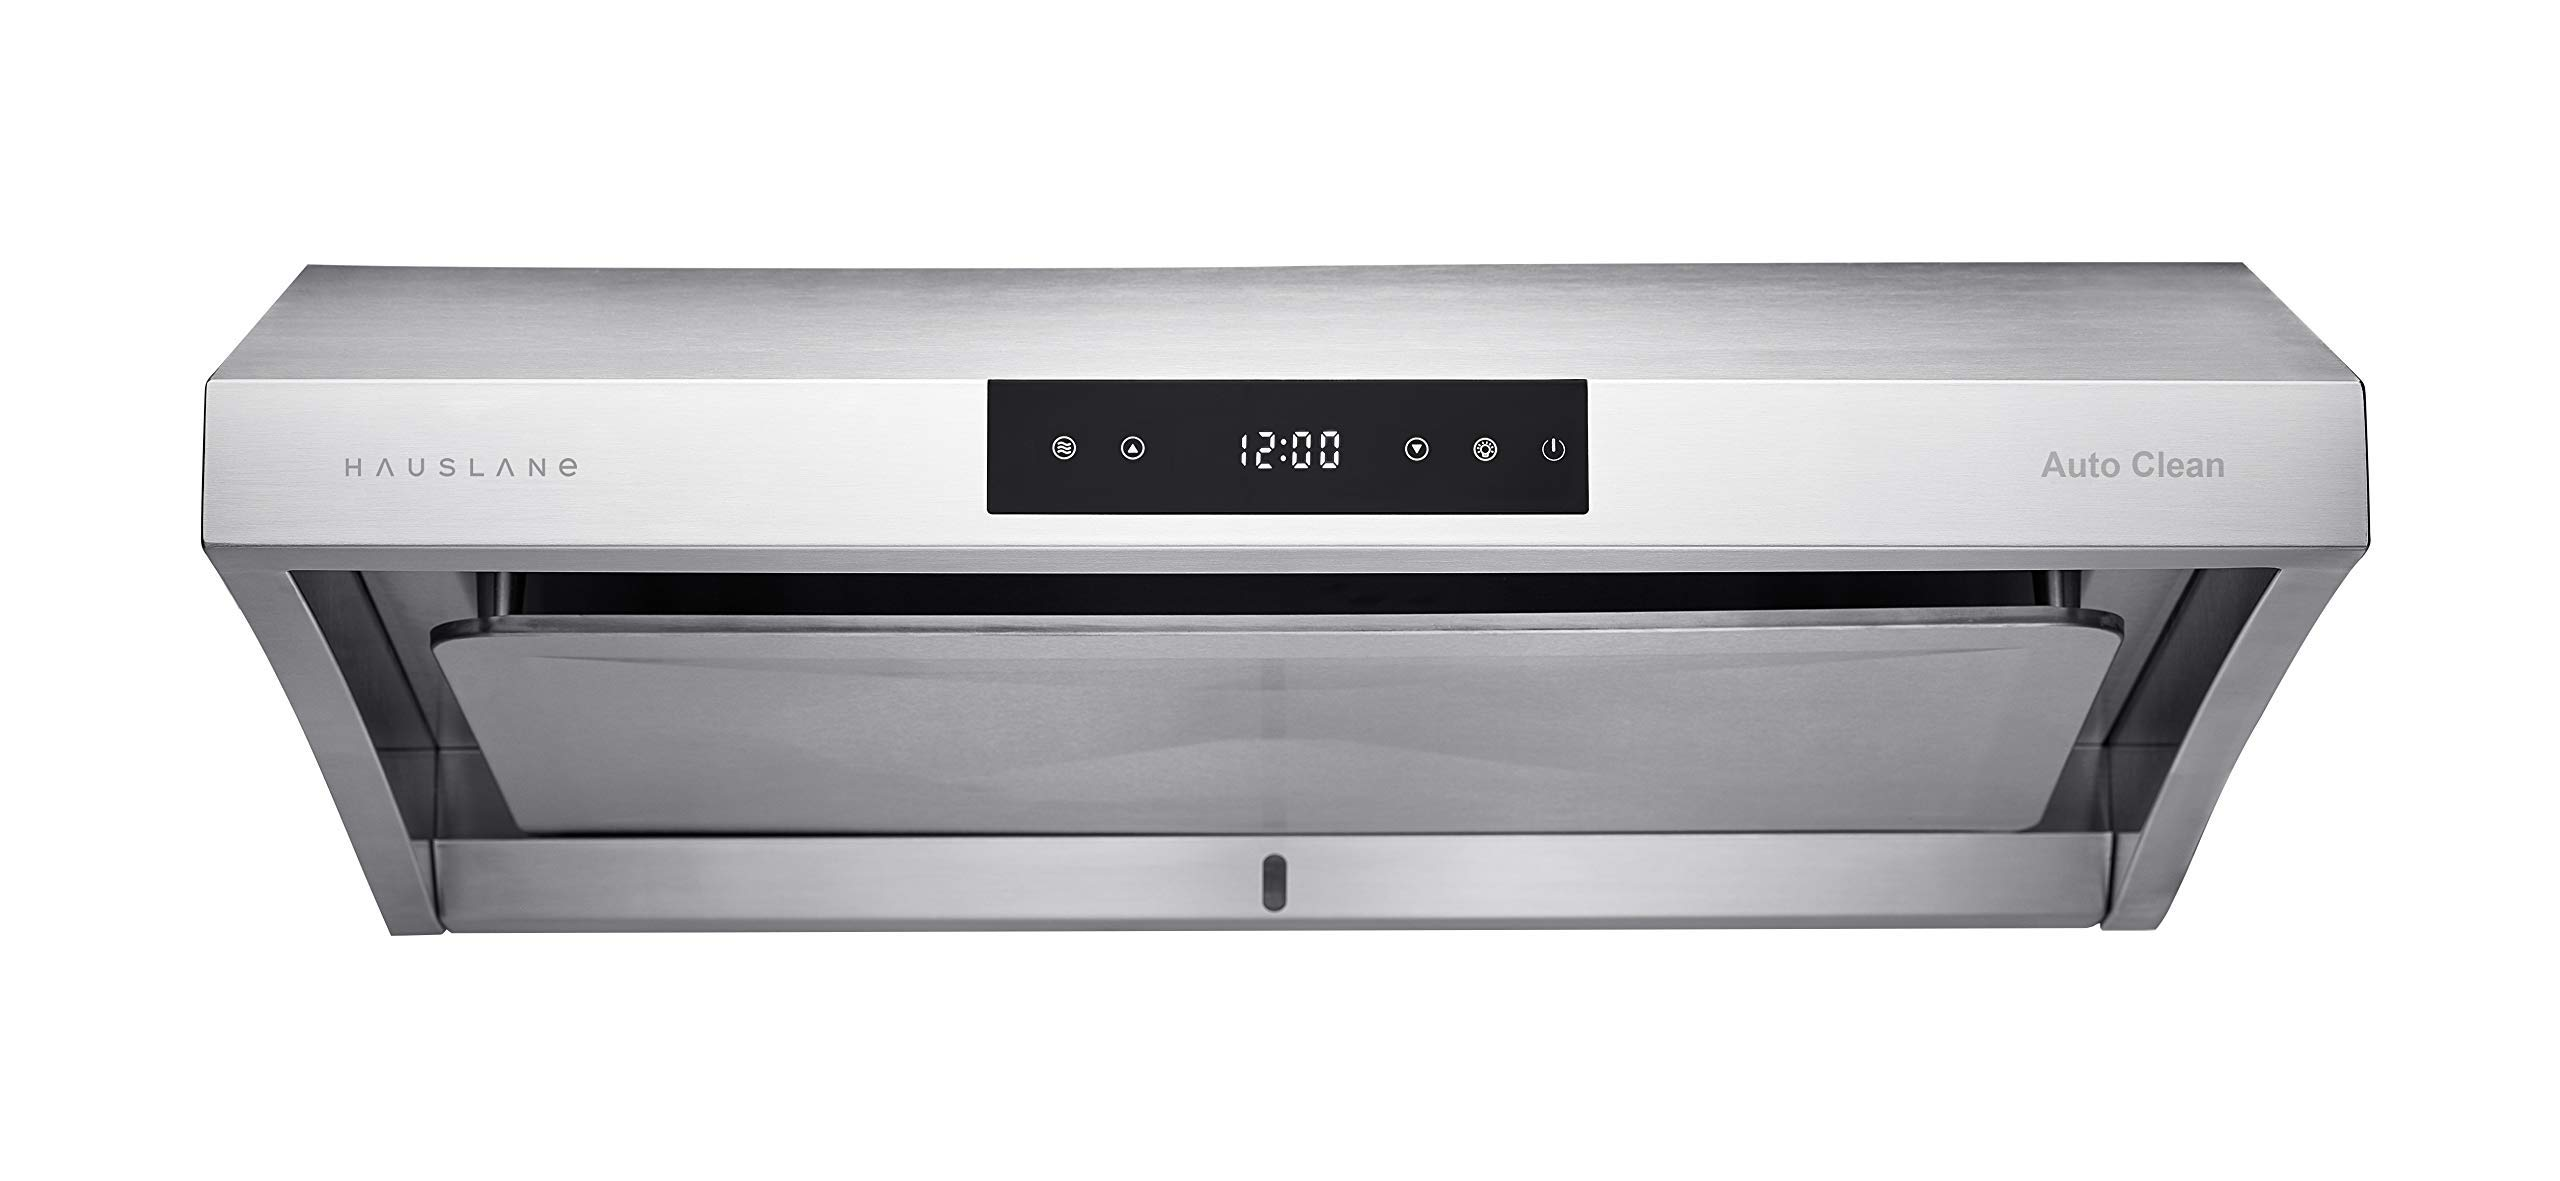 Hauslane Chef Series Range Hood 30 Ps38 Pro Performance Stainless Steel Slim Under Cabinet Range Hood Design Steam Auto Clean 950 Cfm Touch Panel Superior Perimeter Aspiration Extraction